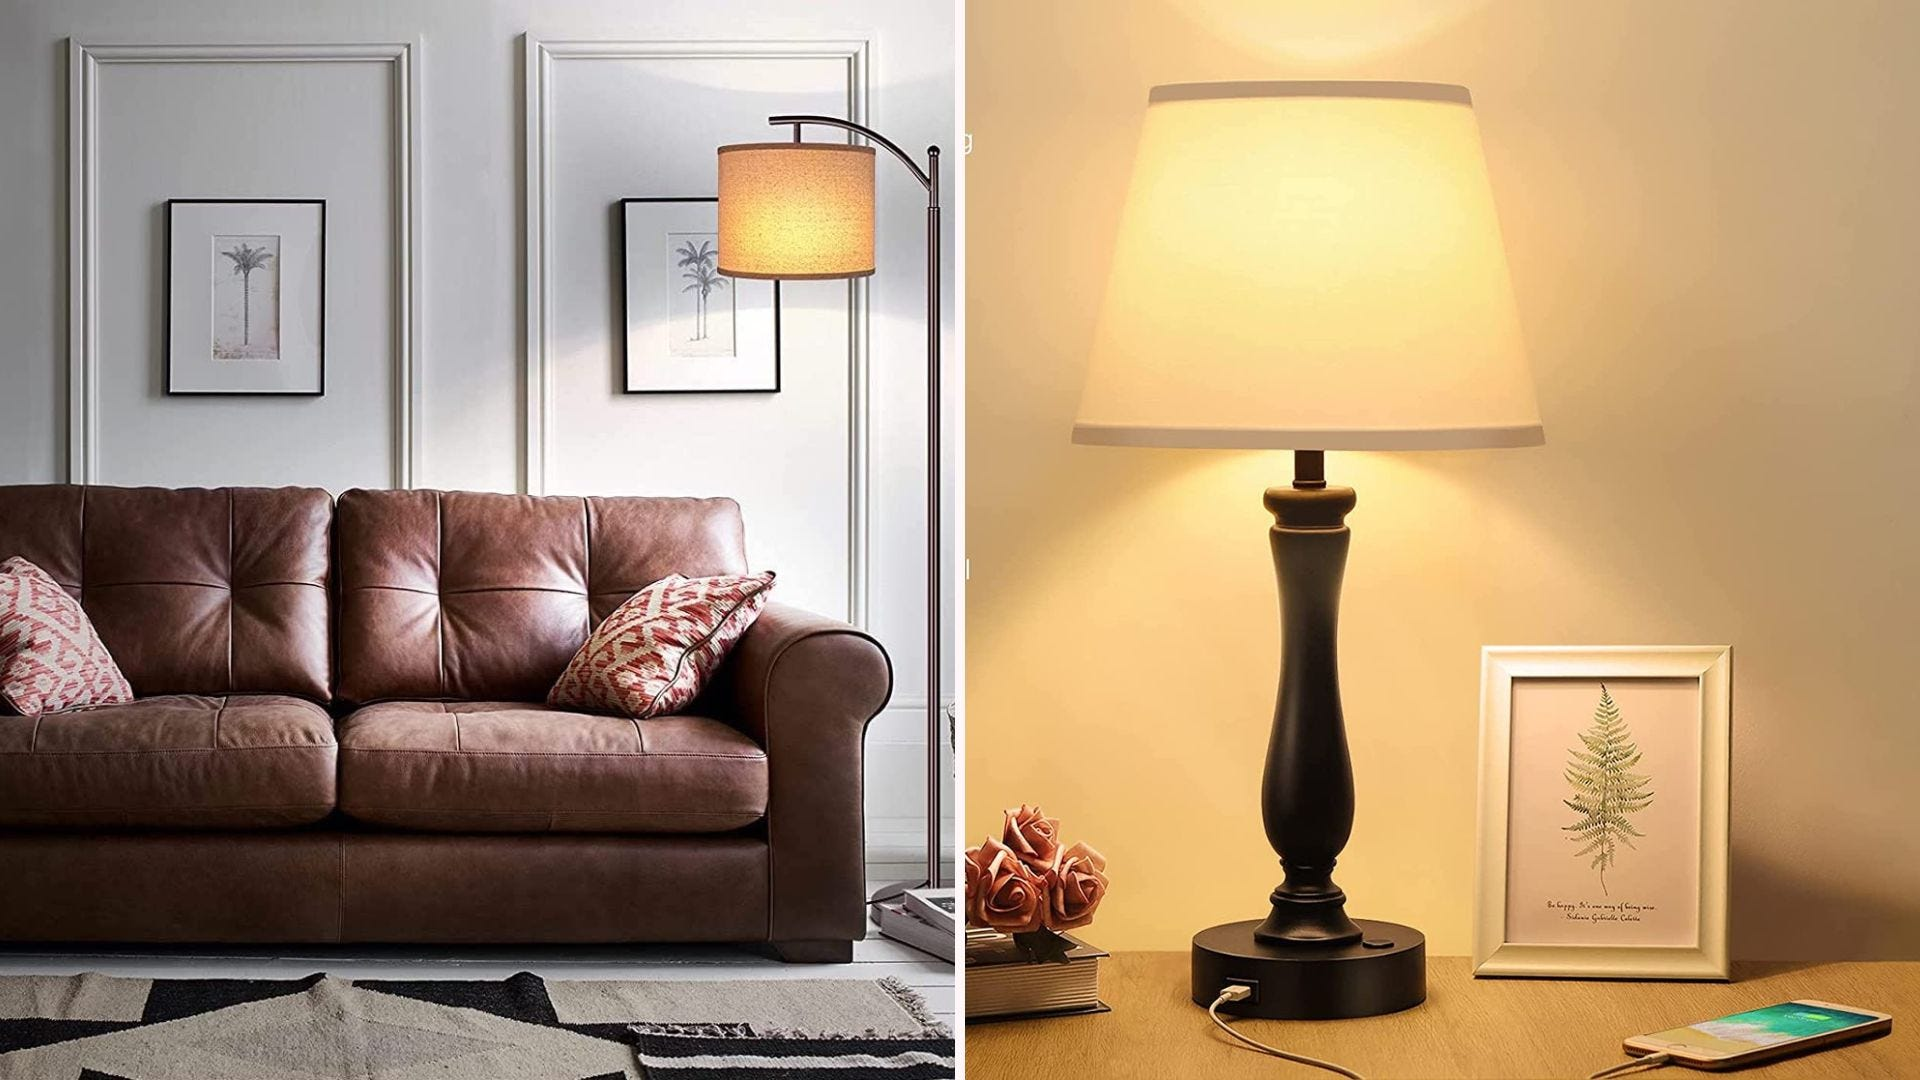 A couch with a floor lamp next to it; a table lamp